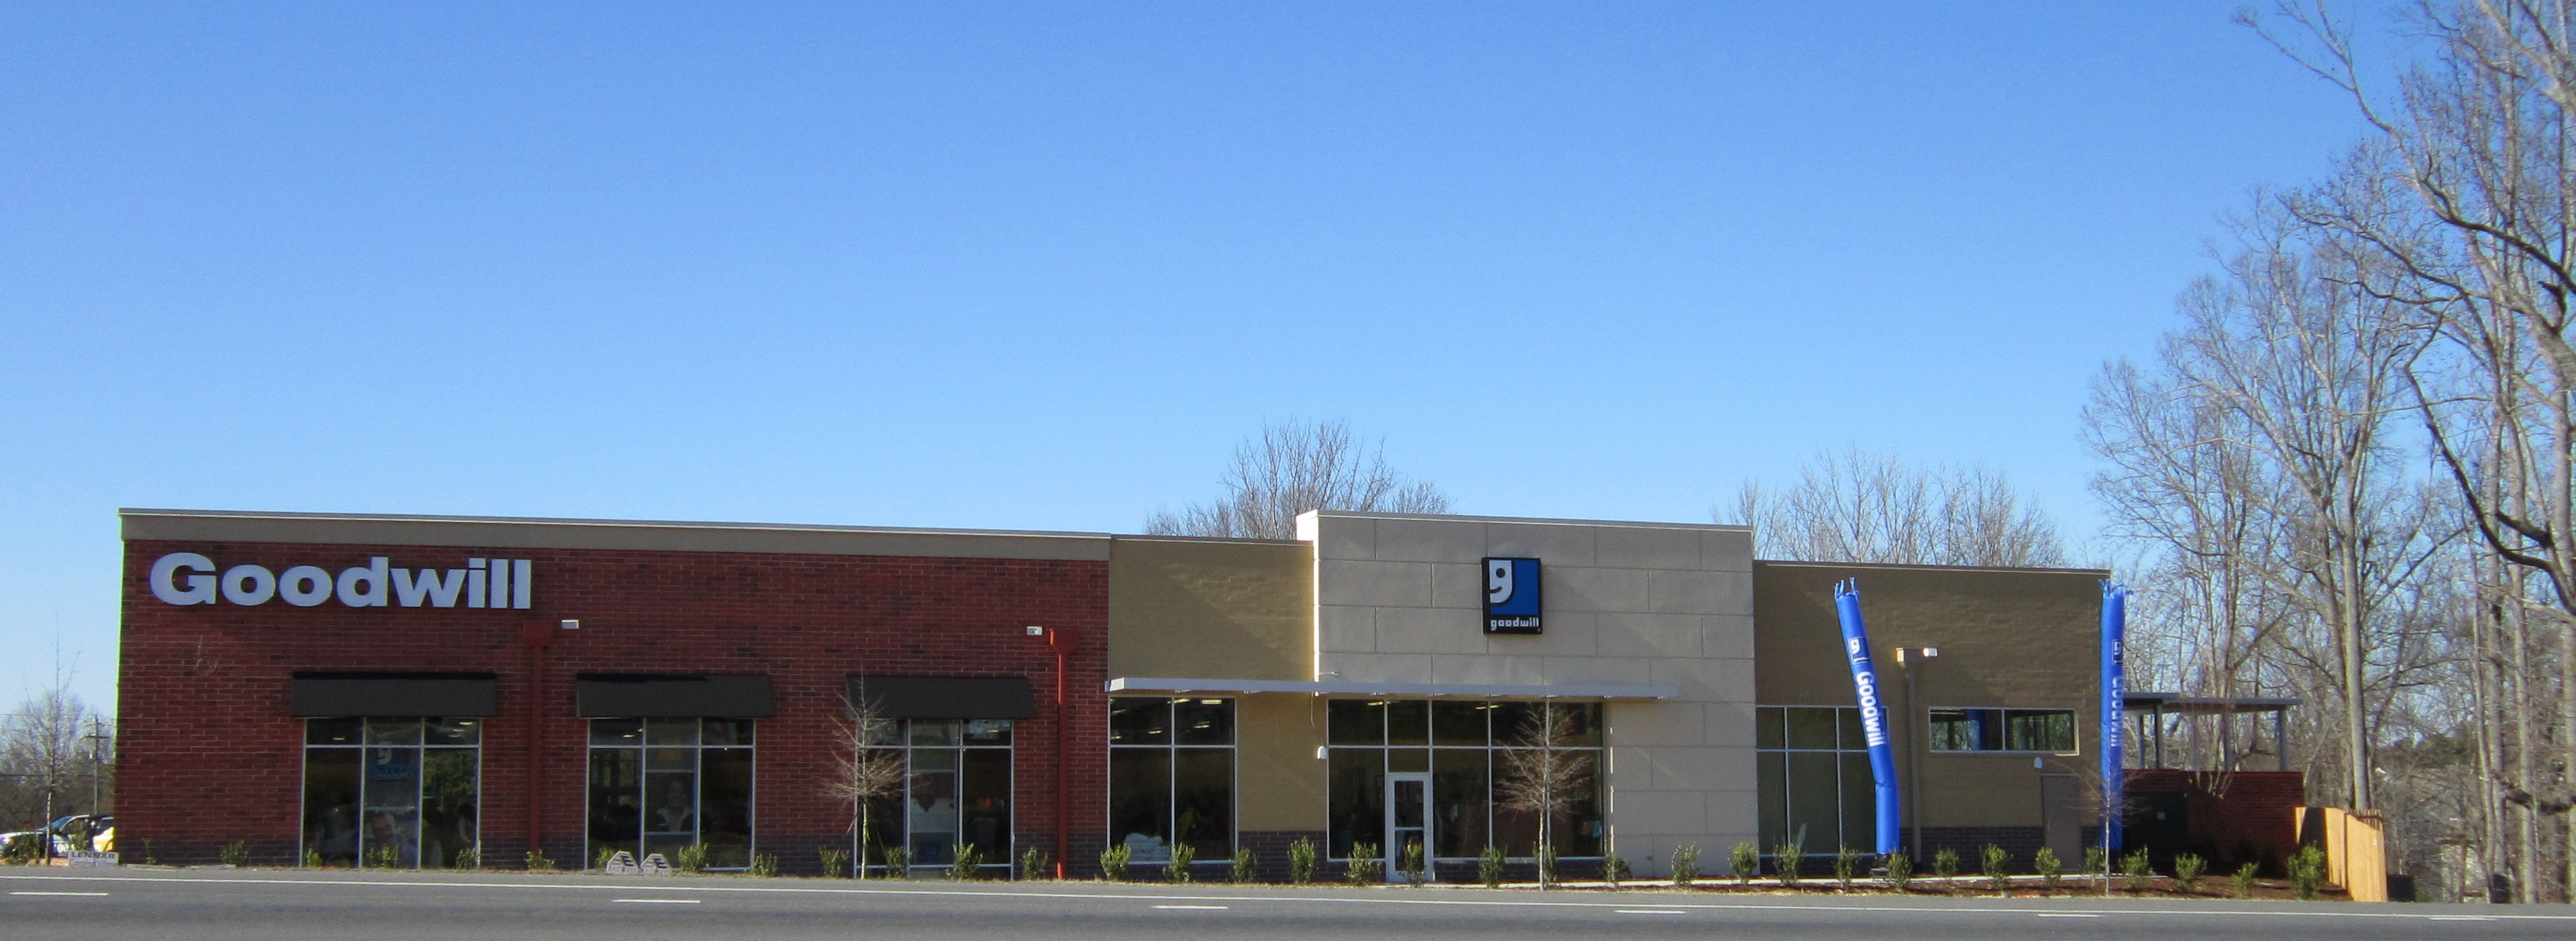 Goodwill's Opening a Huge Success in Ballantyne ... Goodwill